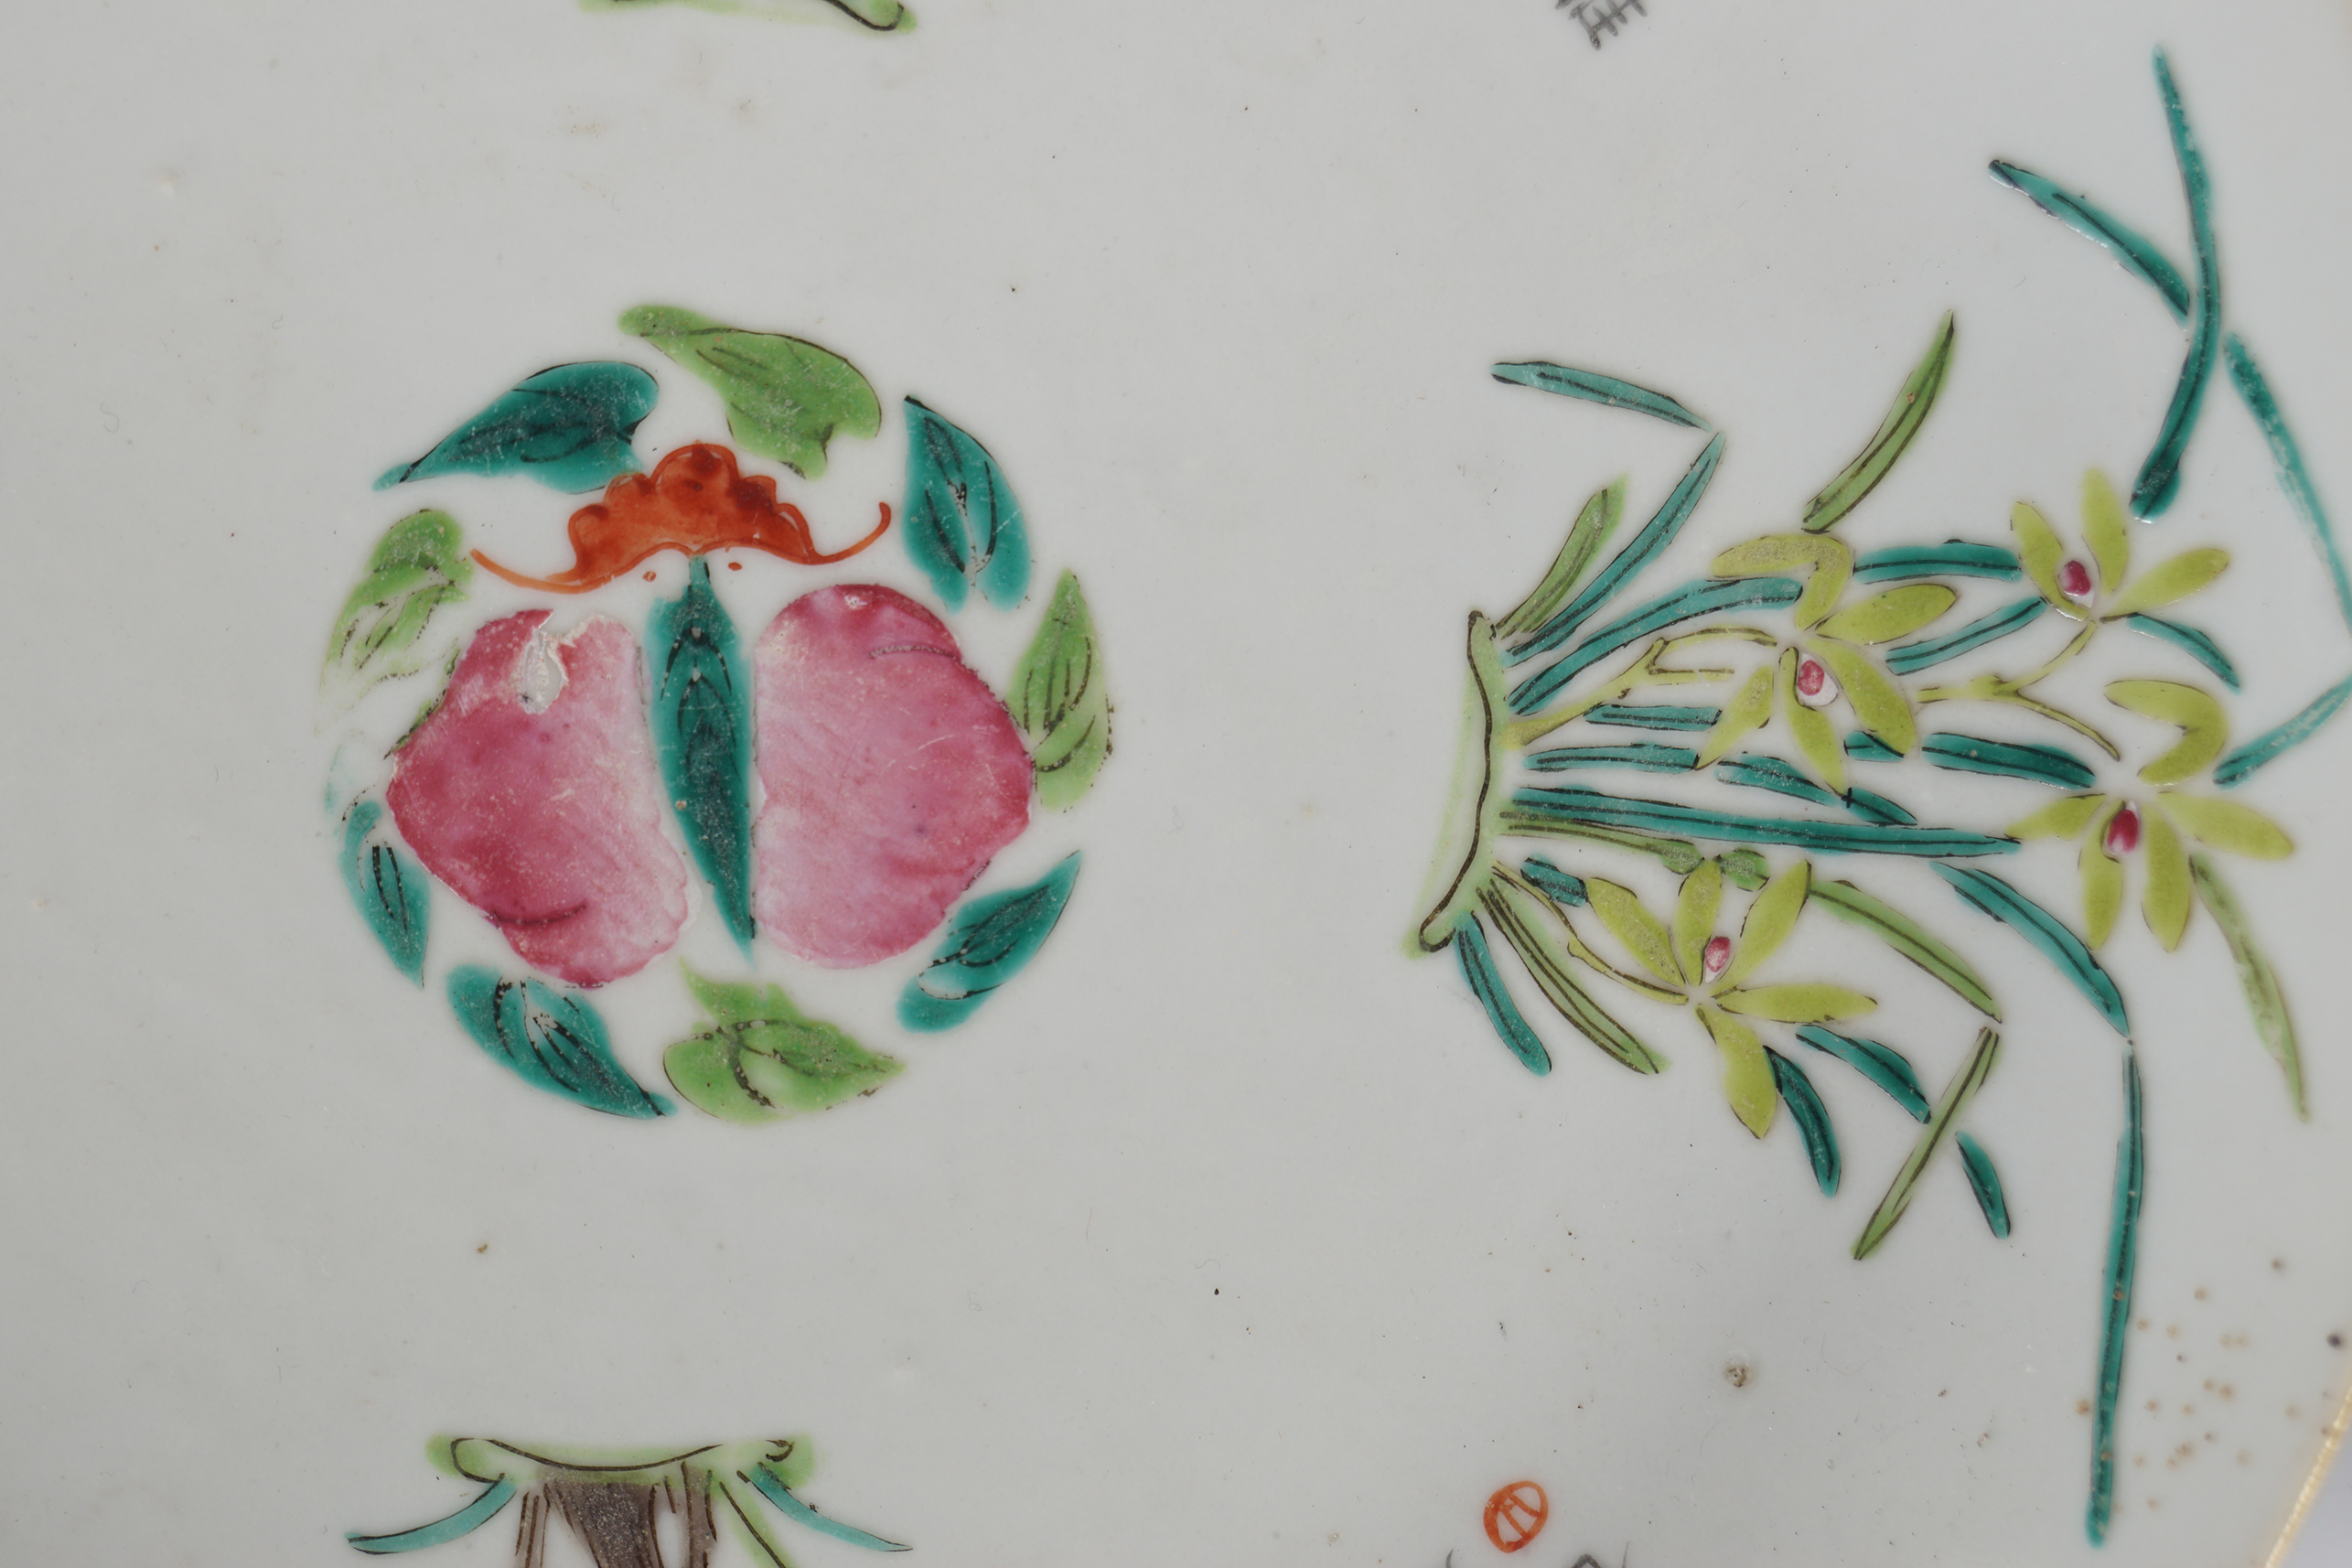 PAIR OF CHINESE CHENGHUA PLATES - Image 2 of 5